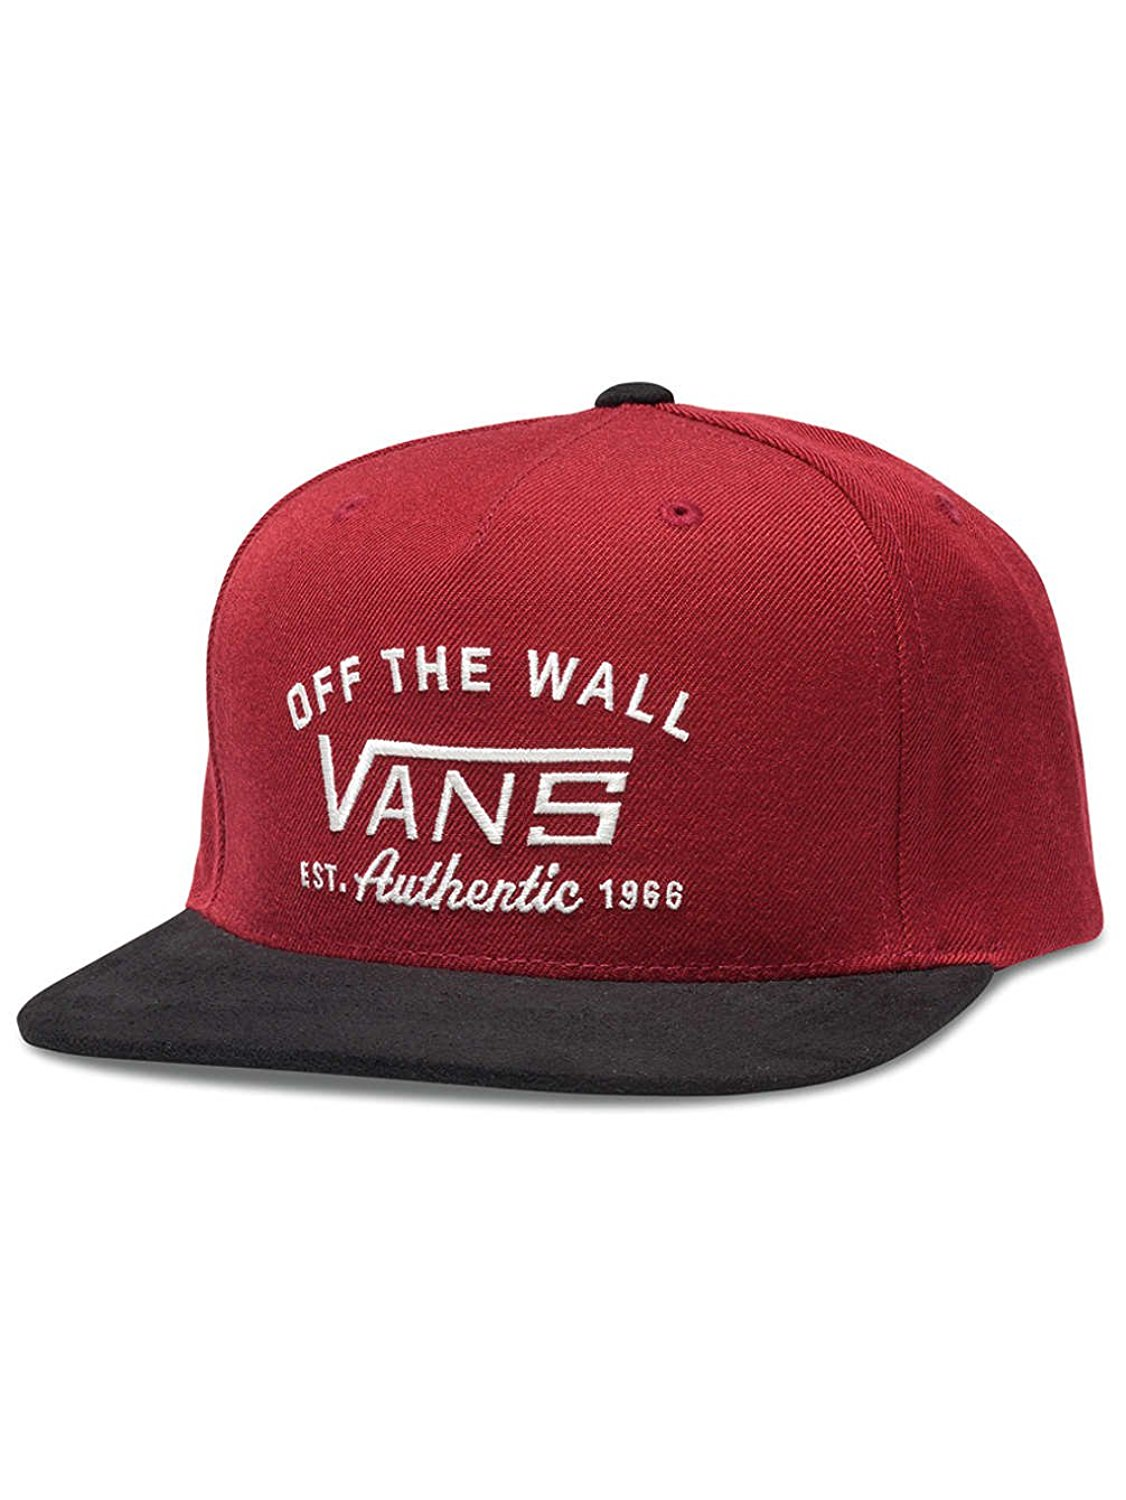 Authentic Start Red Dahlia-Red-UNICA Adjustable Baseball Golf Skateboard Cap By Vans by